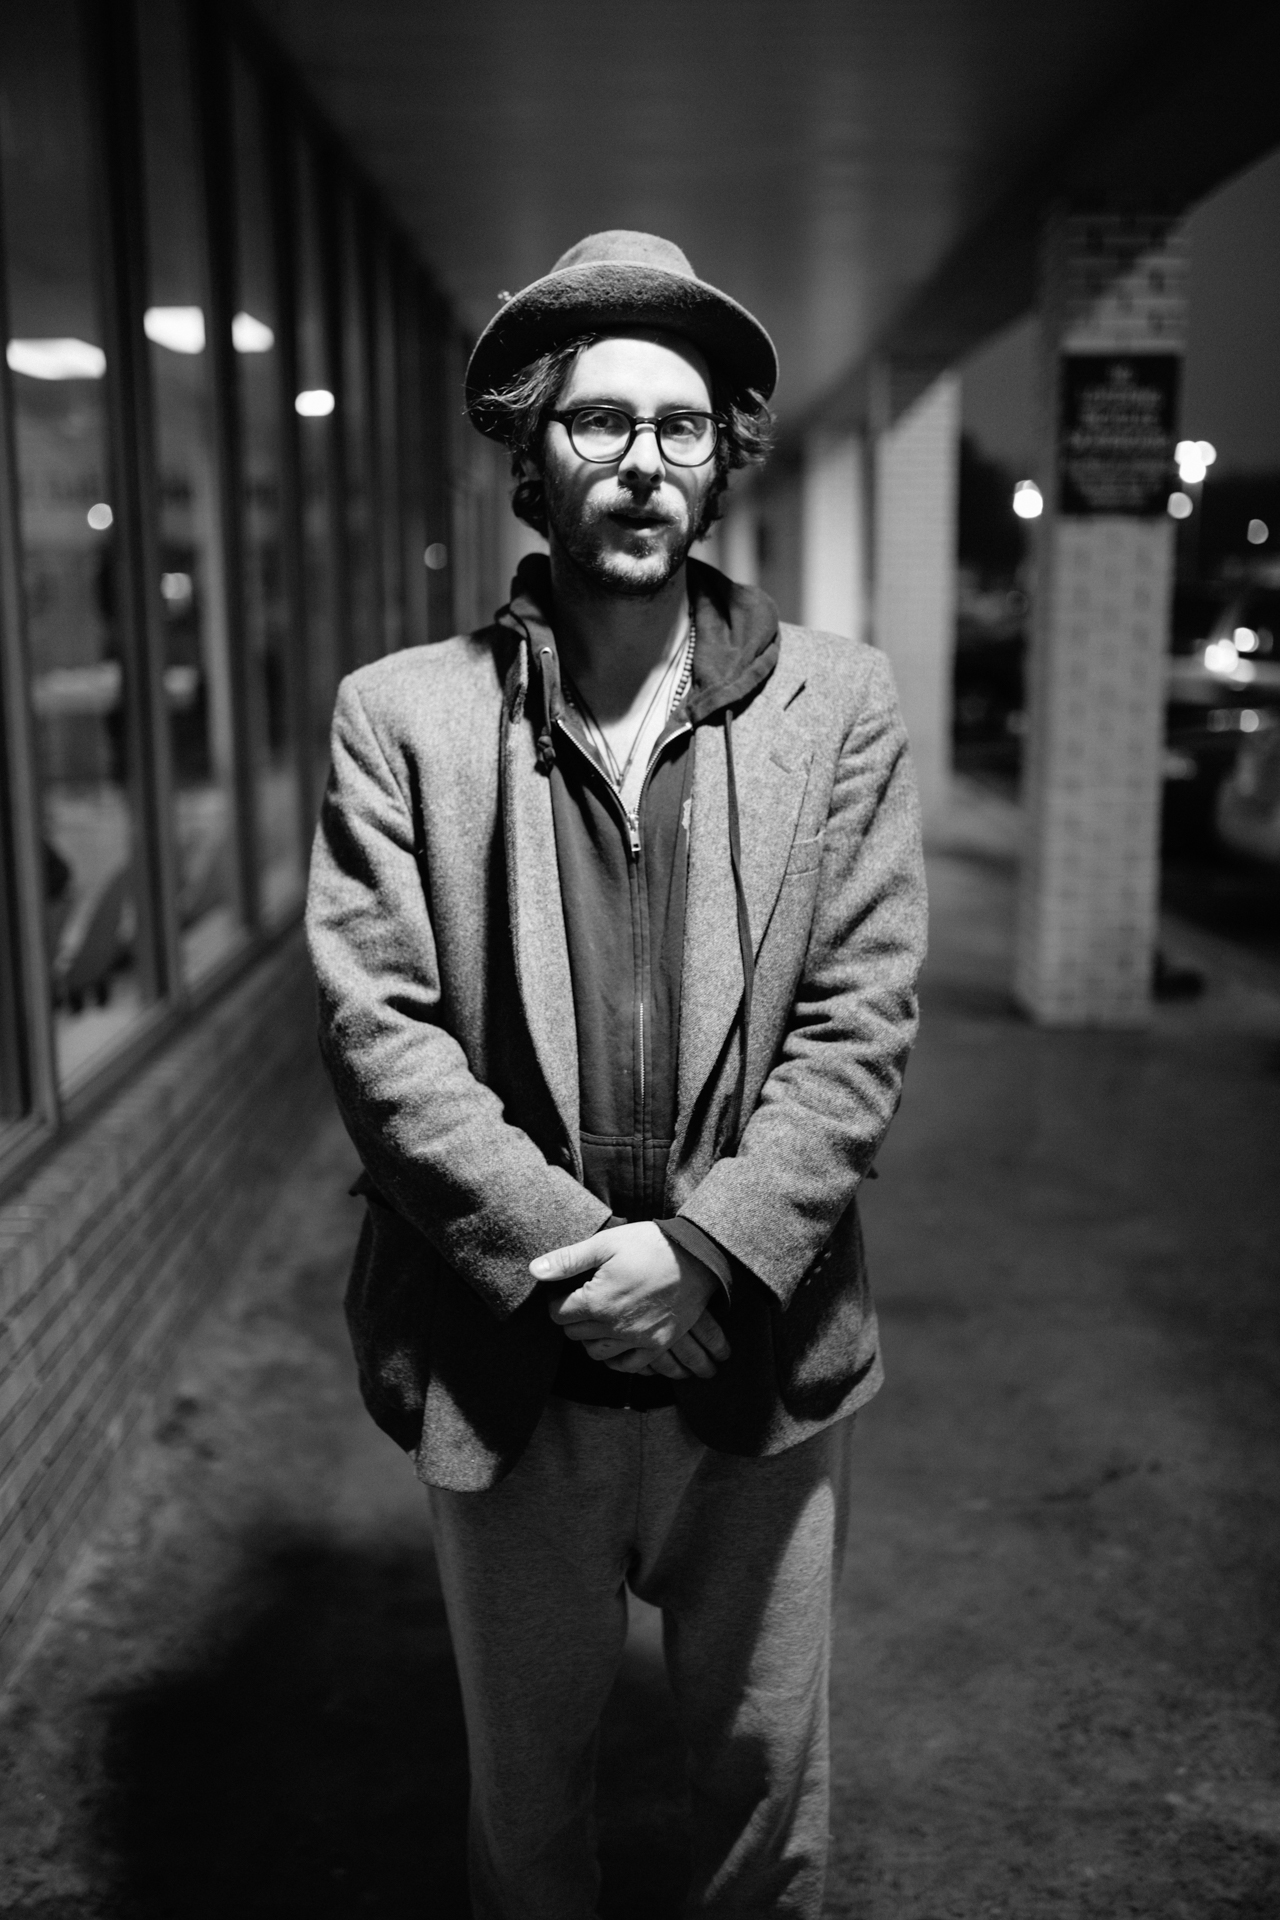 Stelth Ulvang of The Lumineers - at Bull City Suds - Durham, NC Musician Portraits